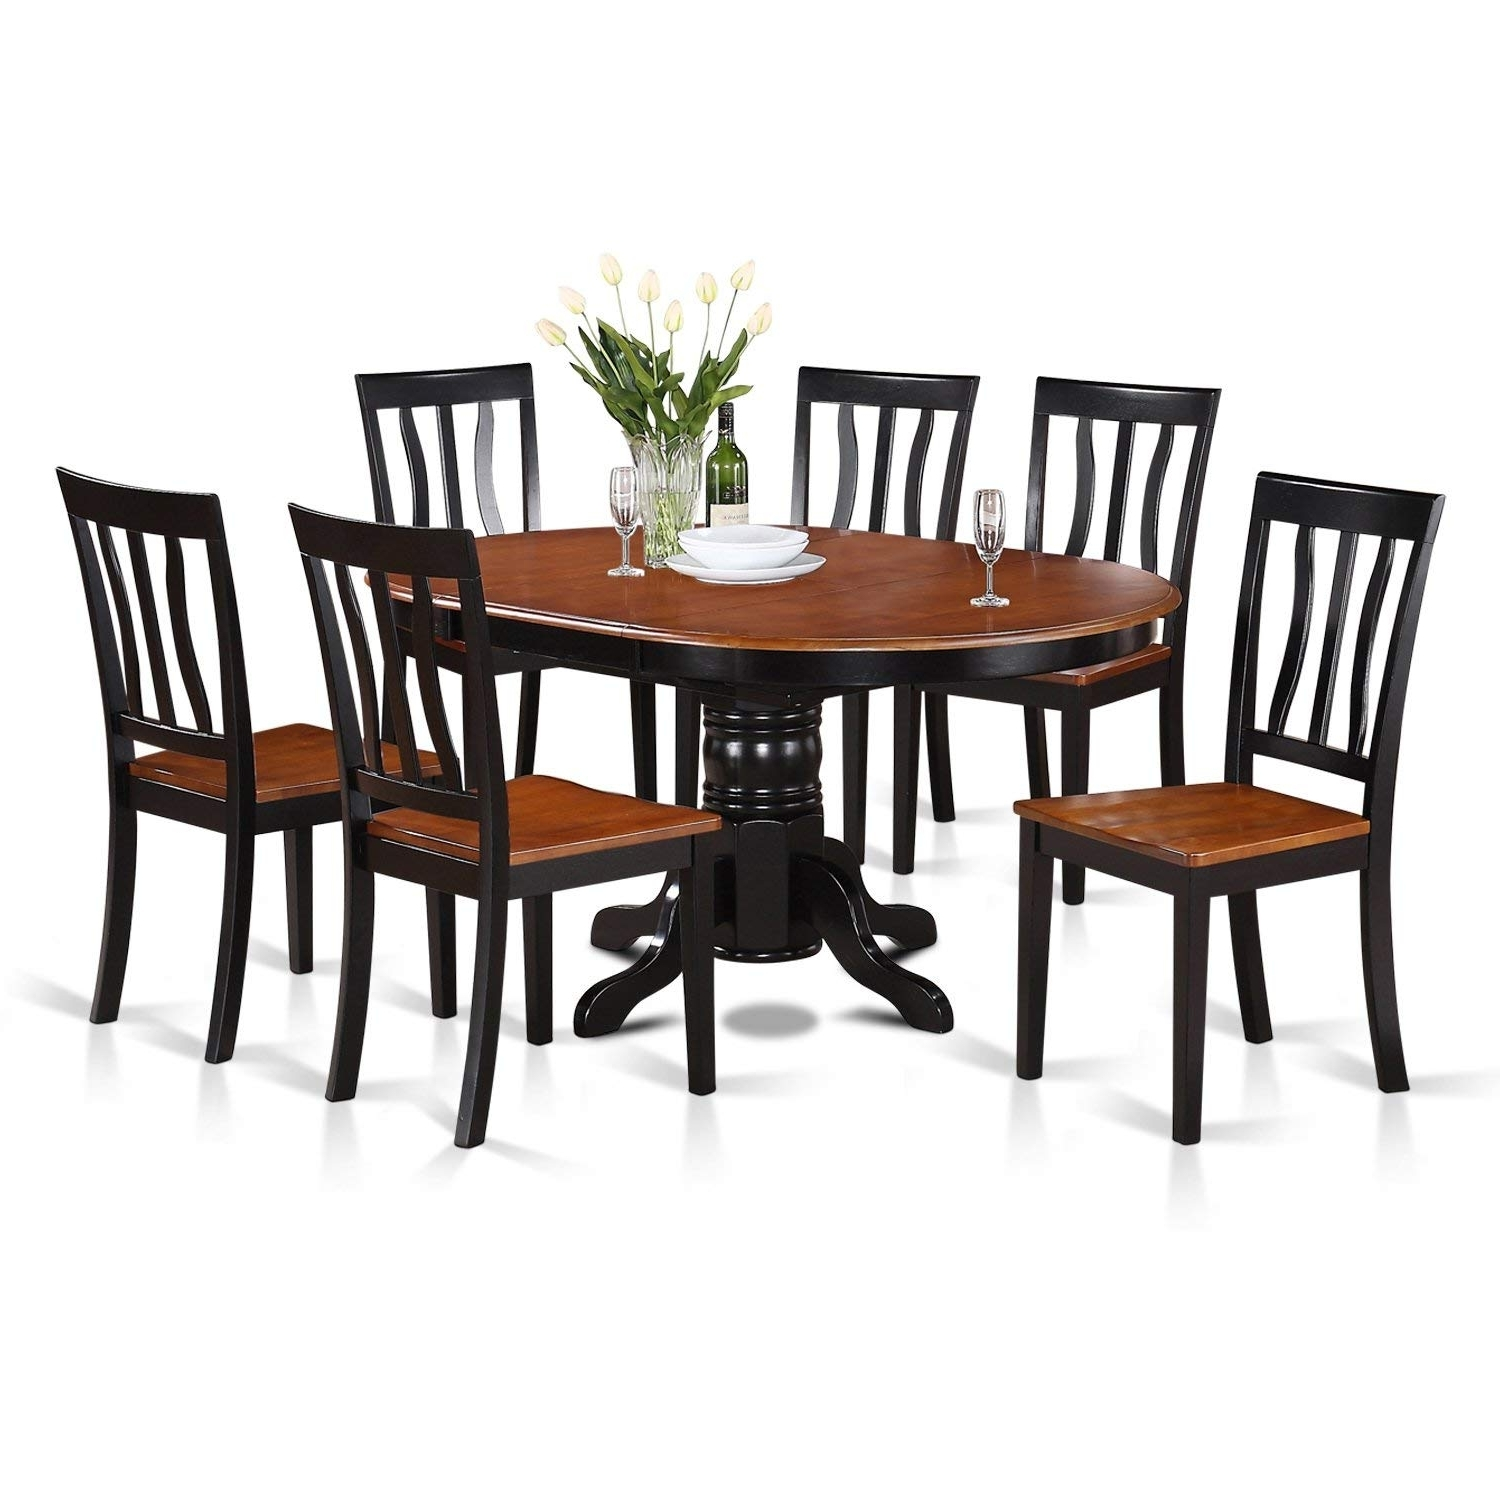 Dining Tables And Chairs Sets within Widely used Amazon: East West Furniture Avat7-Blk-W 7-Piece Dining Table Set